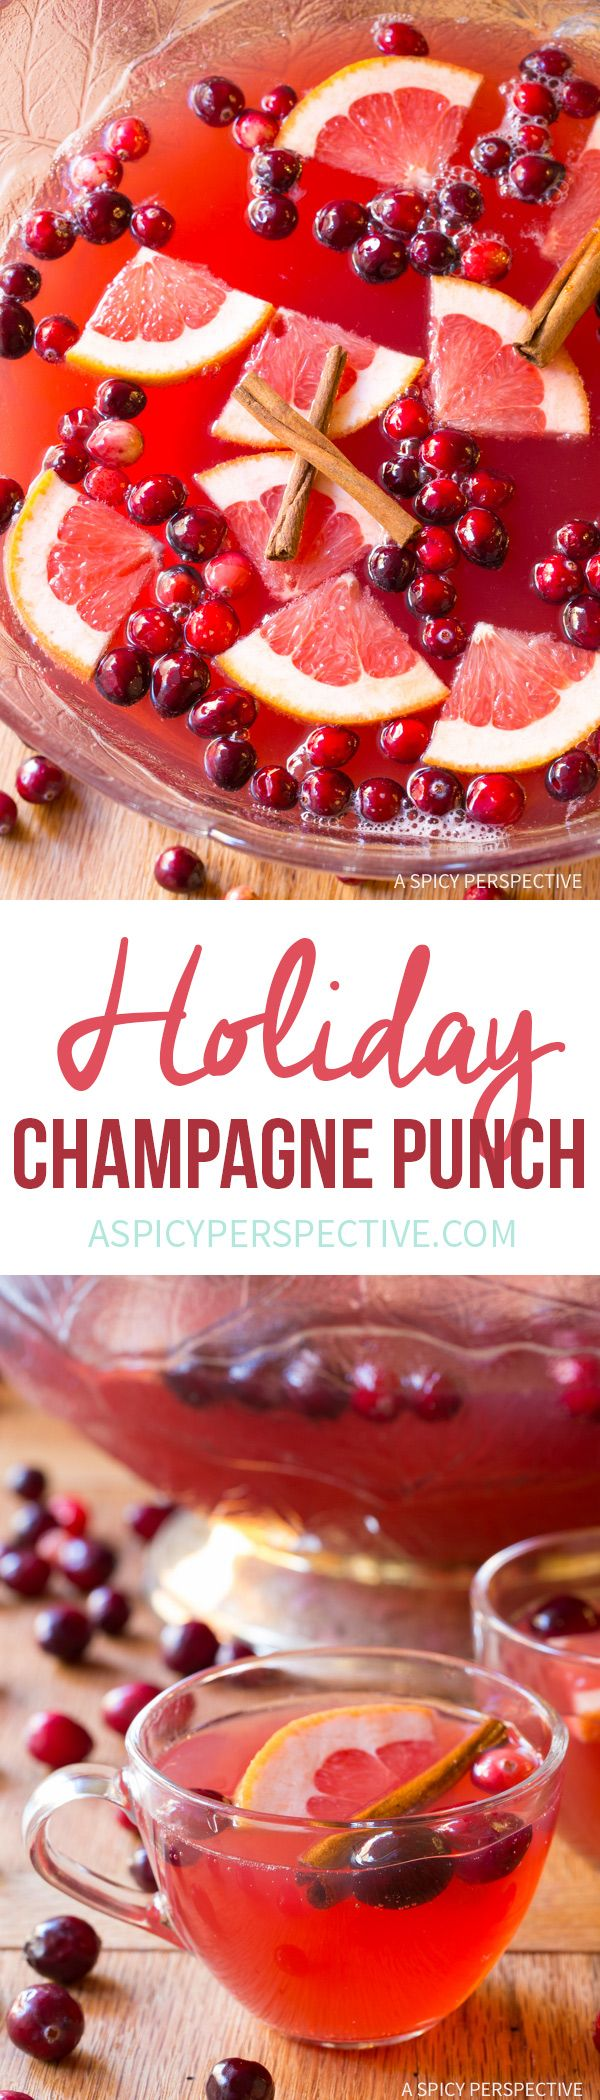 Sparkling Holiday Champagne Punch Recipe on ASpicyPerspective.com #newyearseve #christmas via @spicyperspectiv